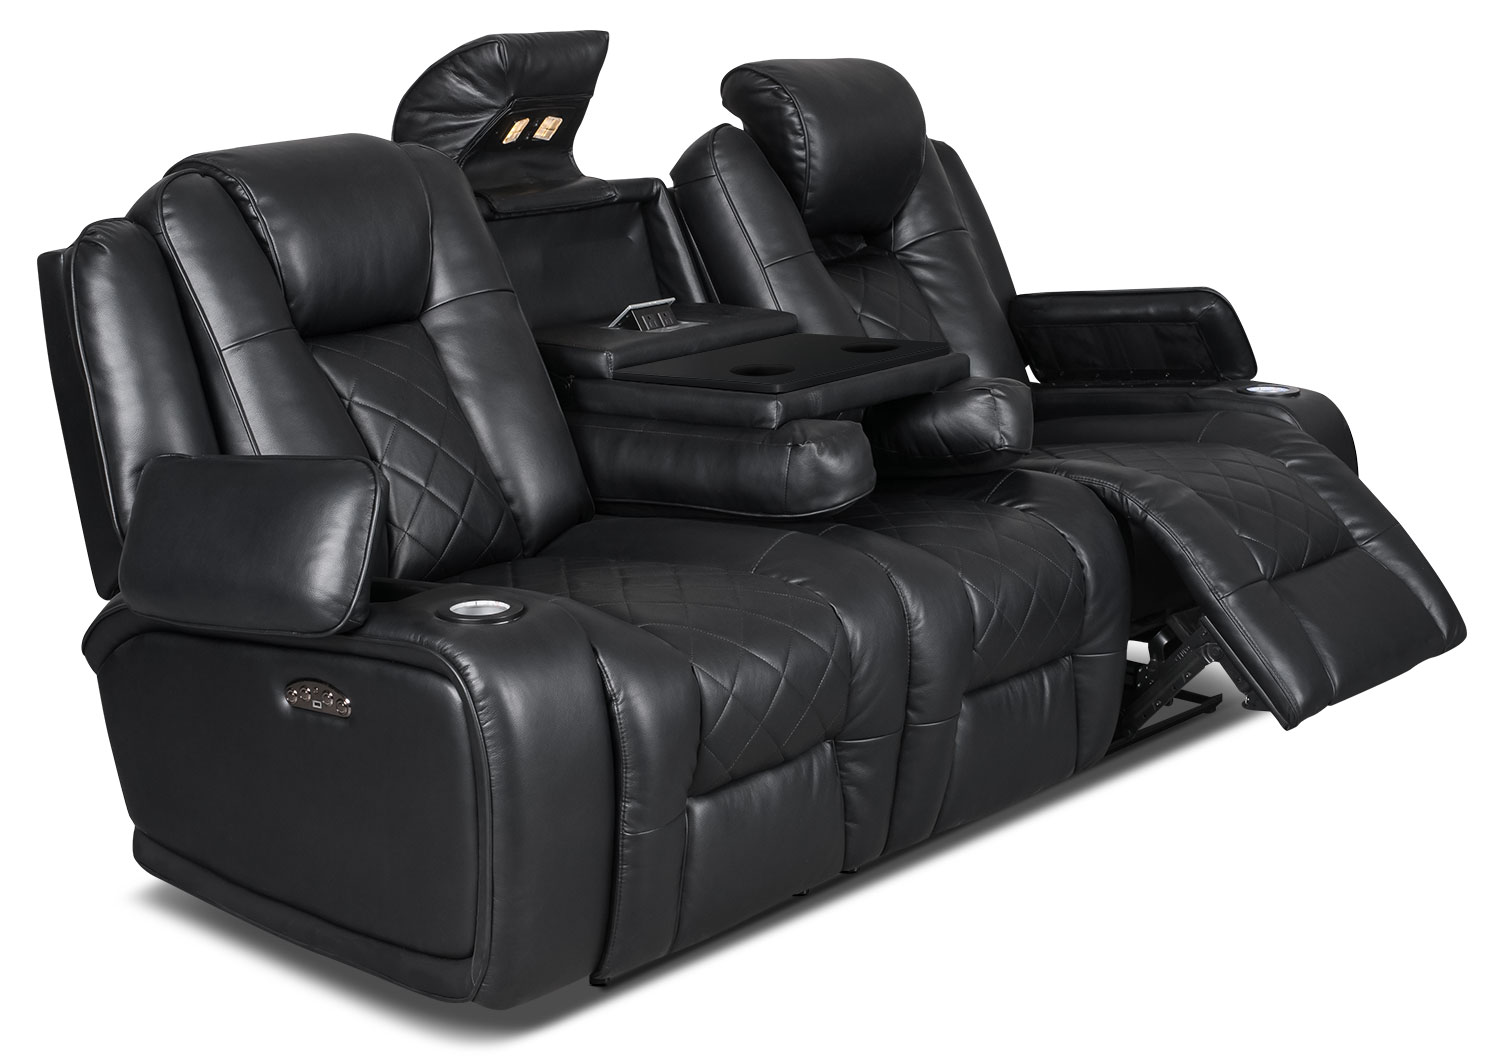 Lonzo Leather Look Fabric Power Reclining Sofa Black The Brick